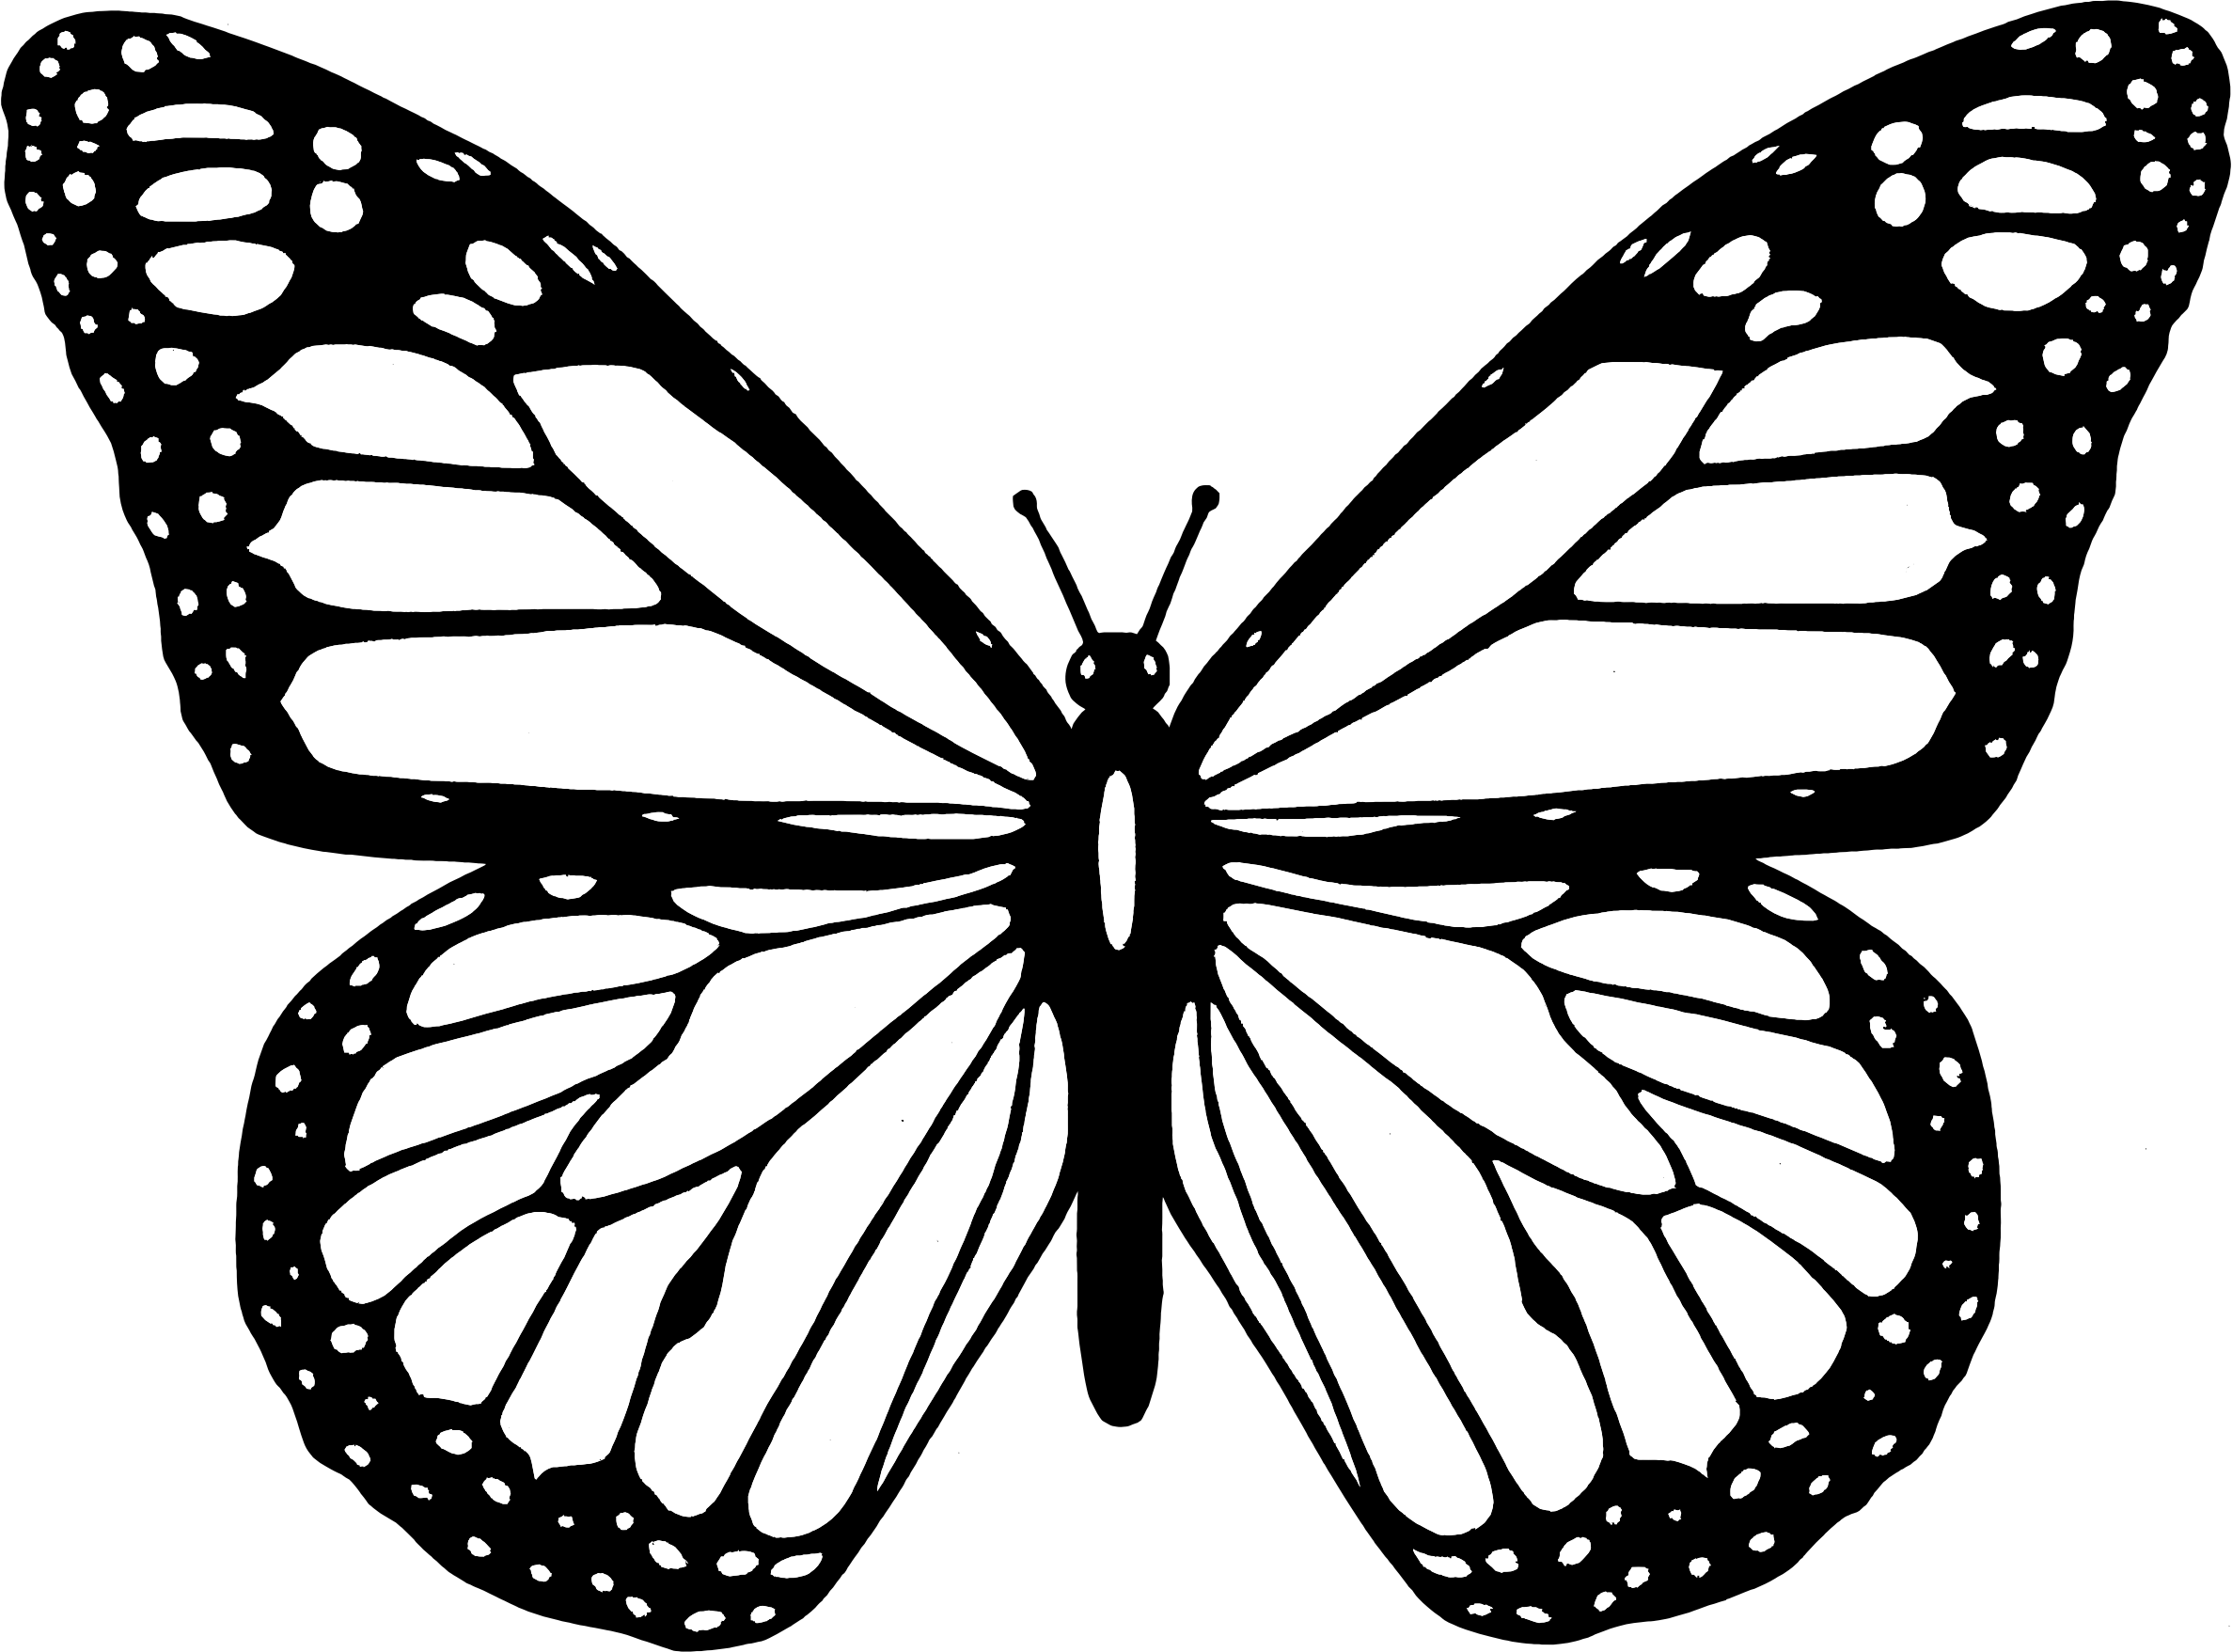 monarch butterfly silhouette at getdrawings com free for personal rh getdrawings com monarch butterfly clipart images monarch butterfly clip art free